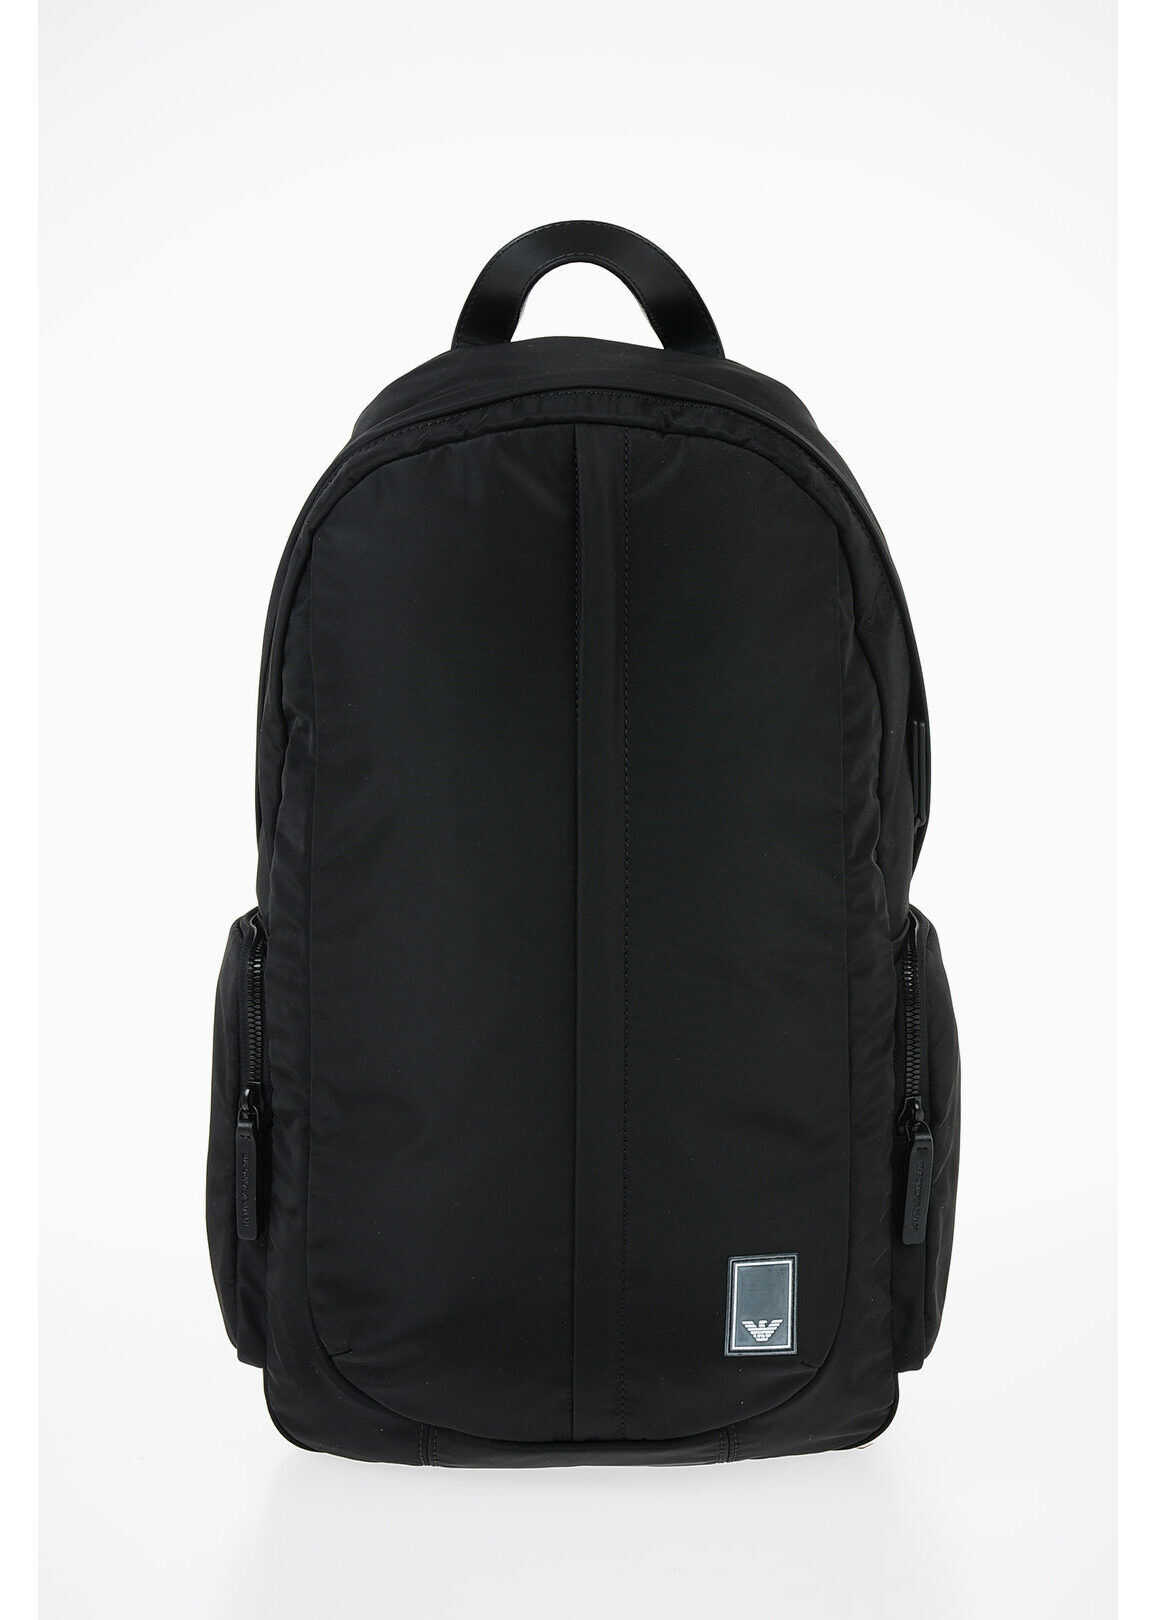 Armani EMPORIO Nylon Backpack BLACK